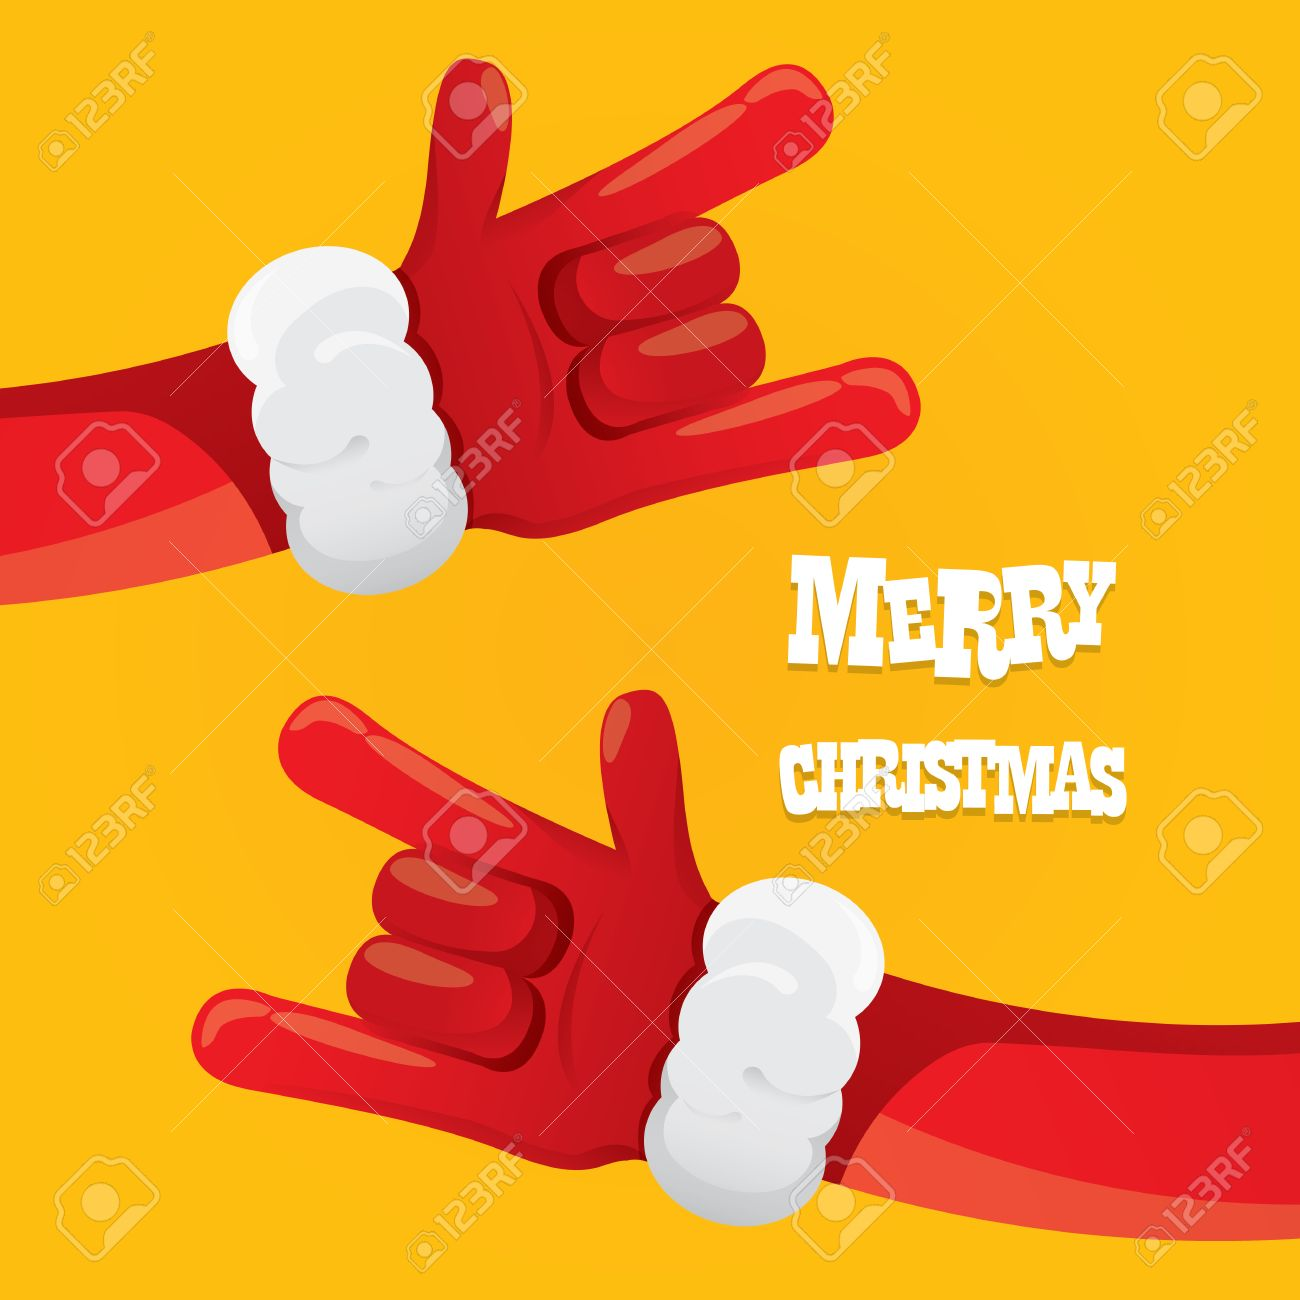 Rock n roll poster design - Santa Claus Hand Rock N Roll Icon Illustration Christmas Rock Concert Poster Design Template Or